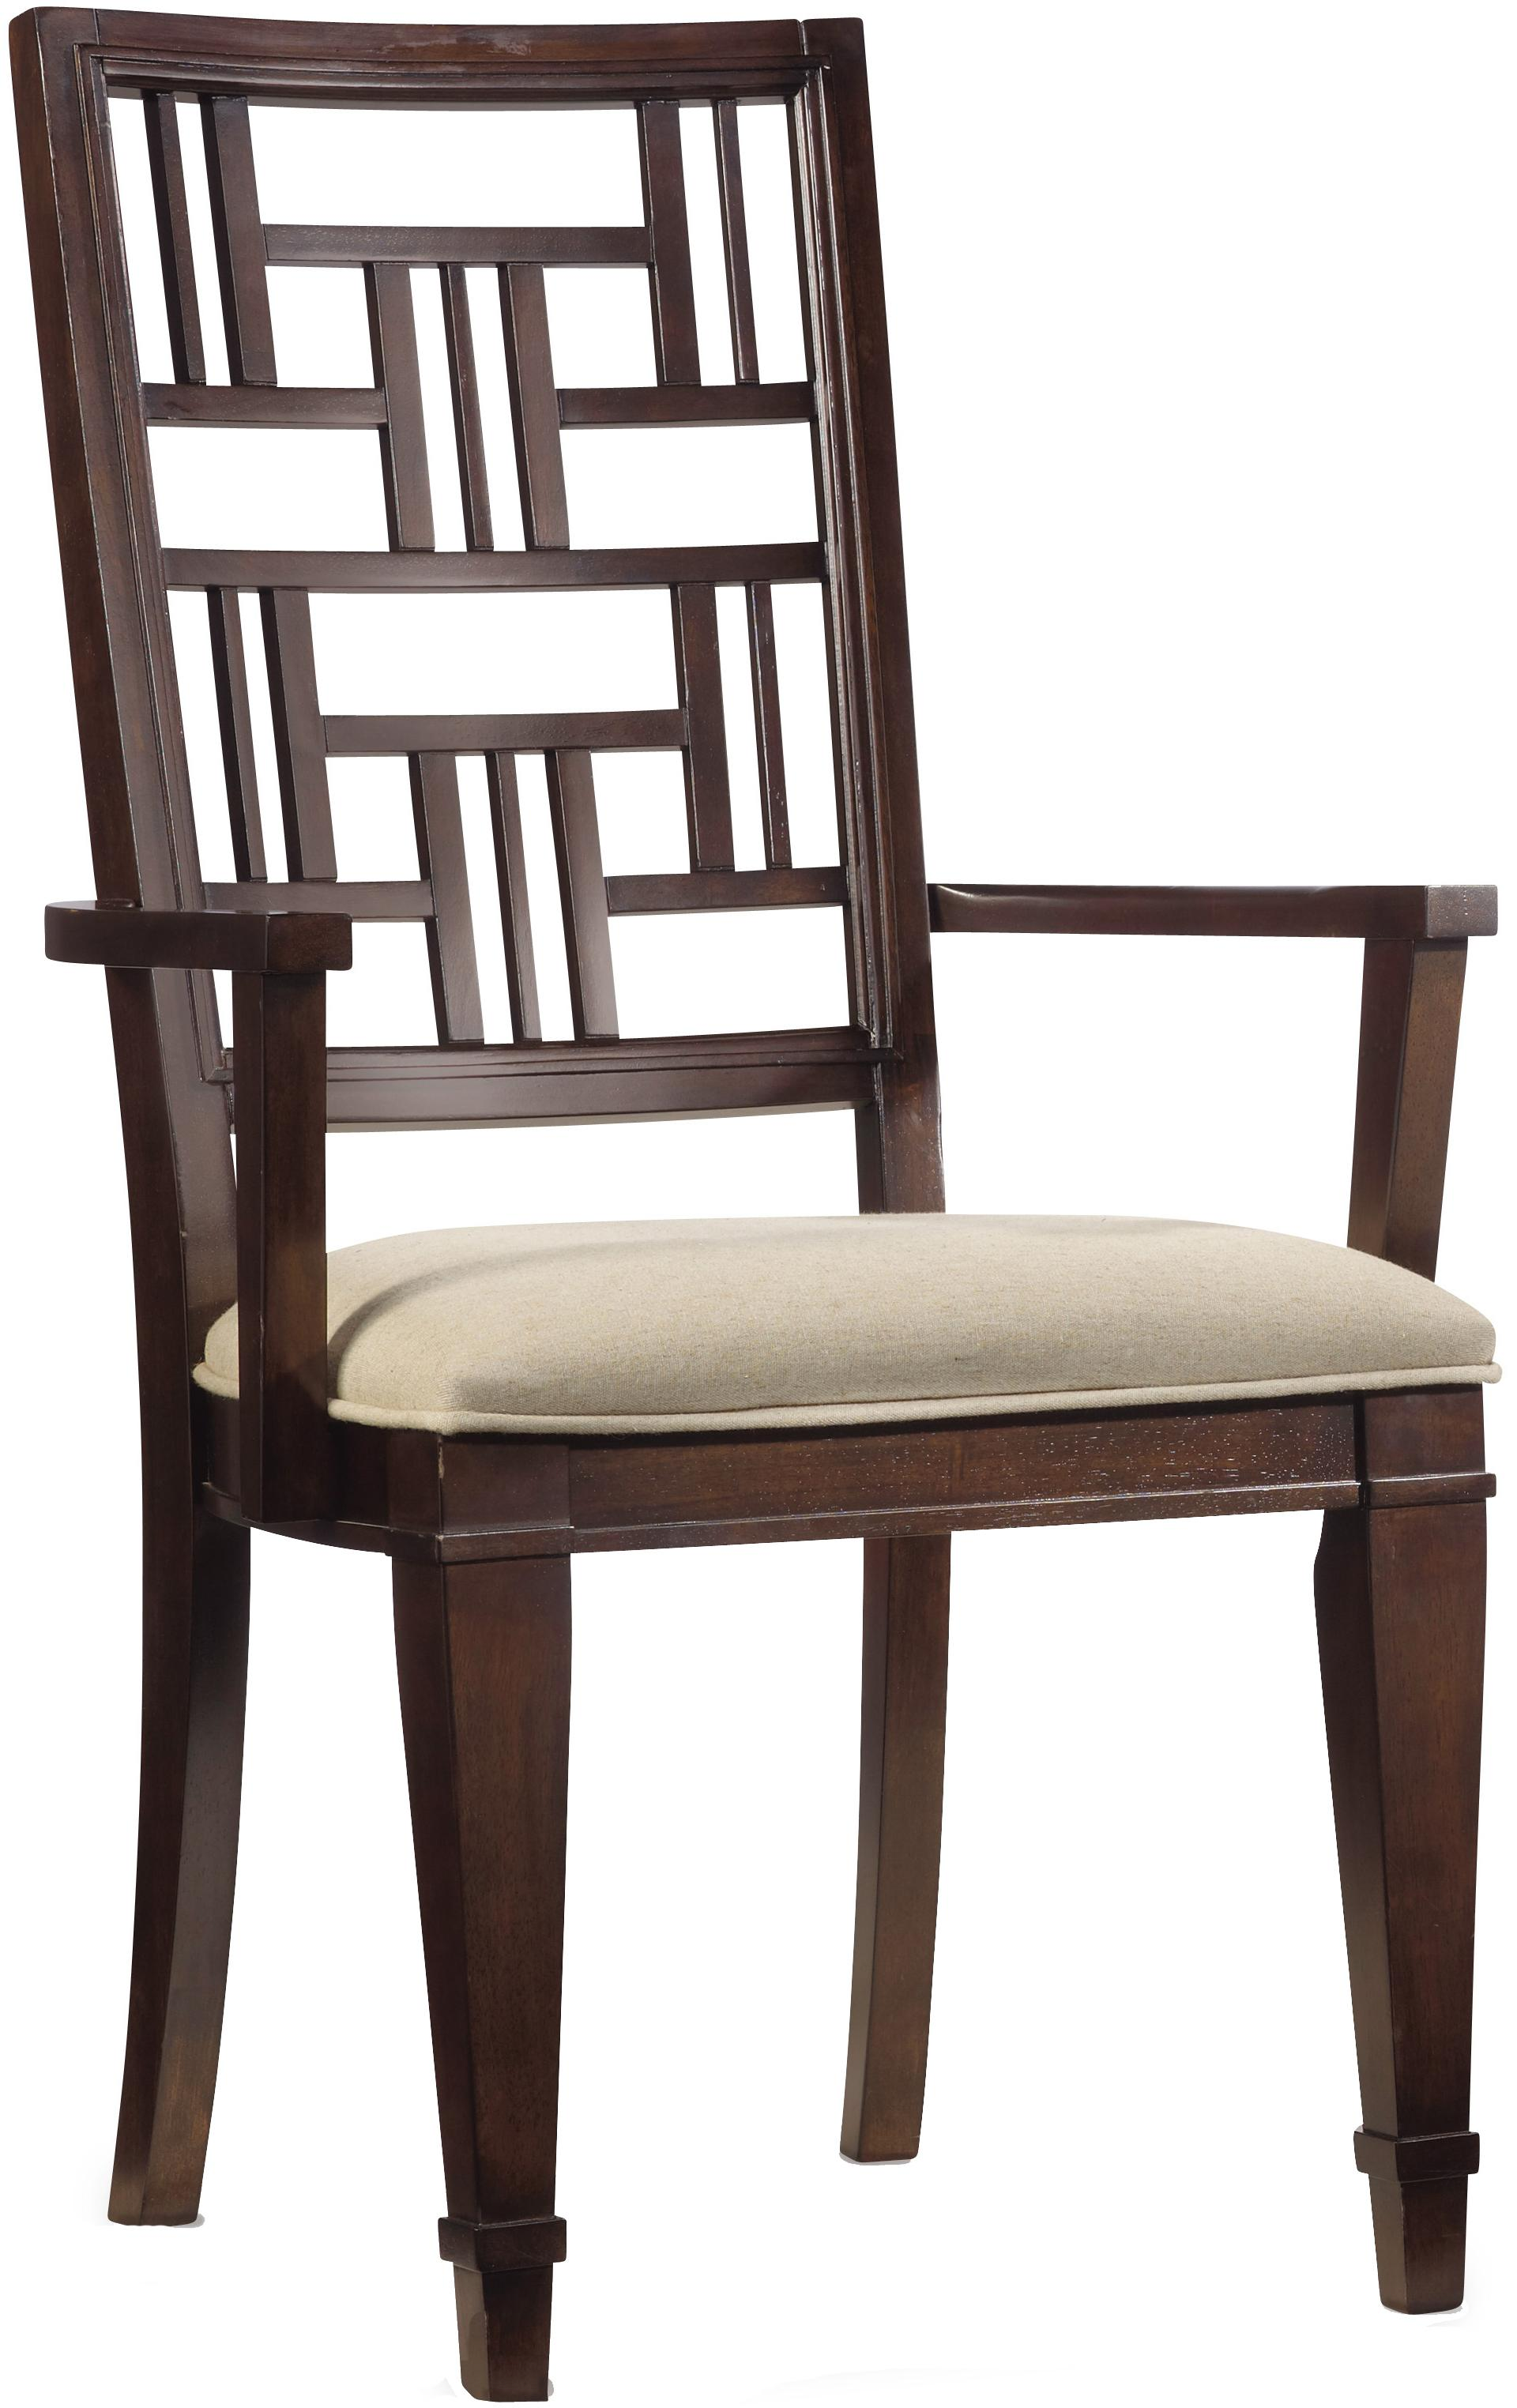 Hooker Furniture Ludlow Fretback Arm Chair - Item Number: 1030-76400